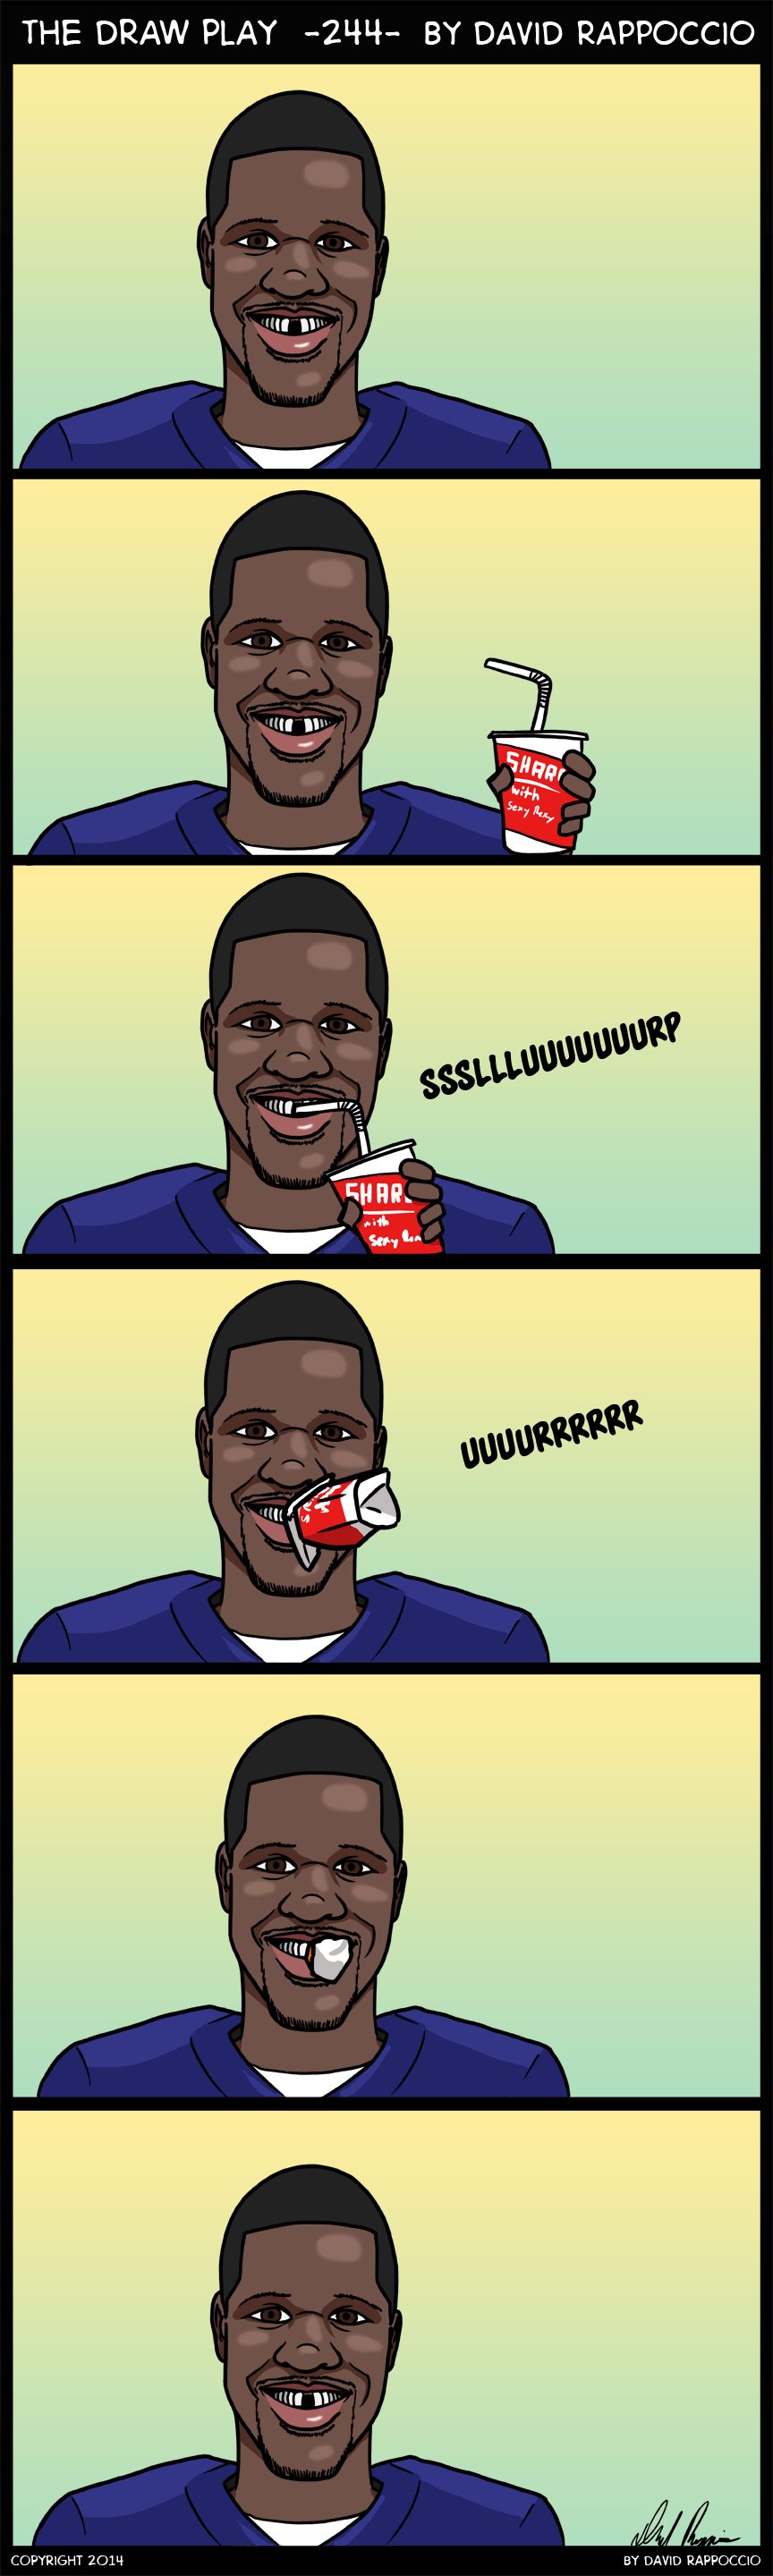 Final phoned in comic of the offseason!